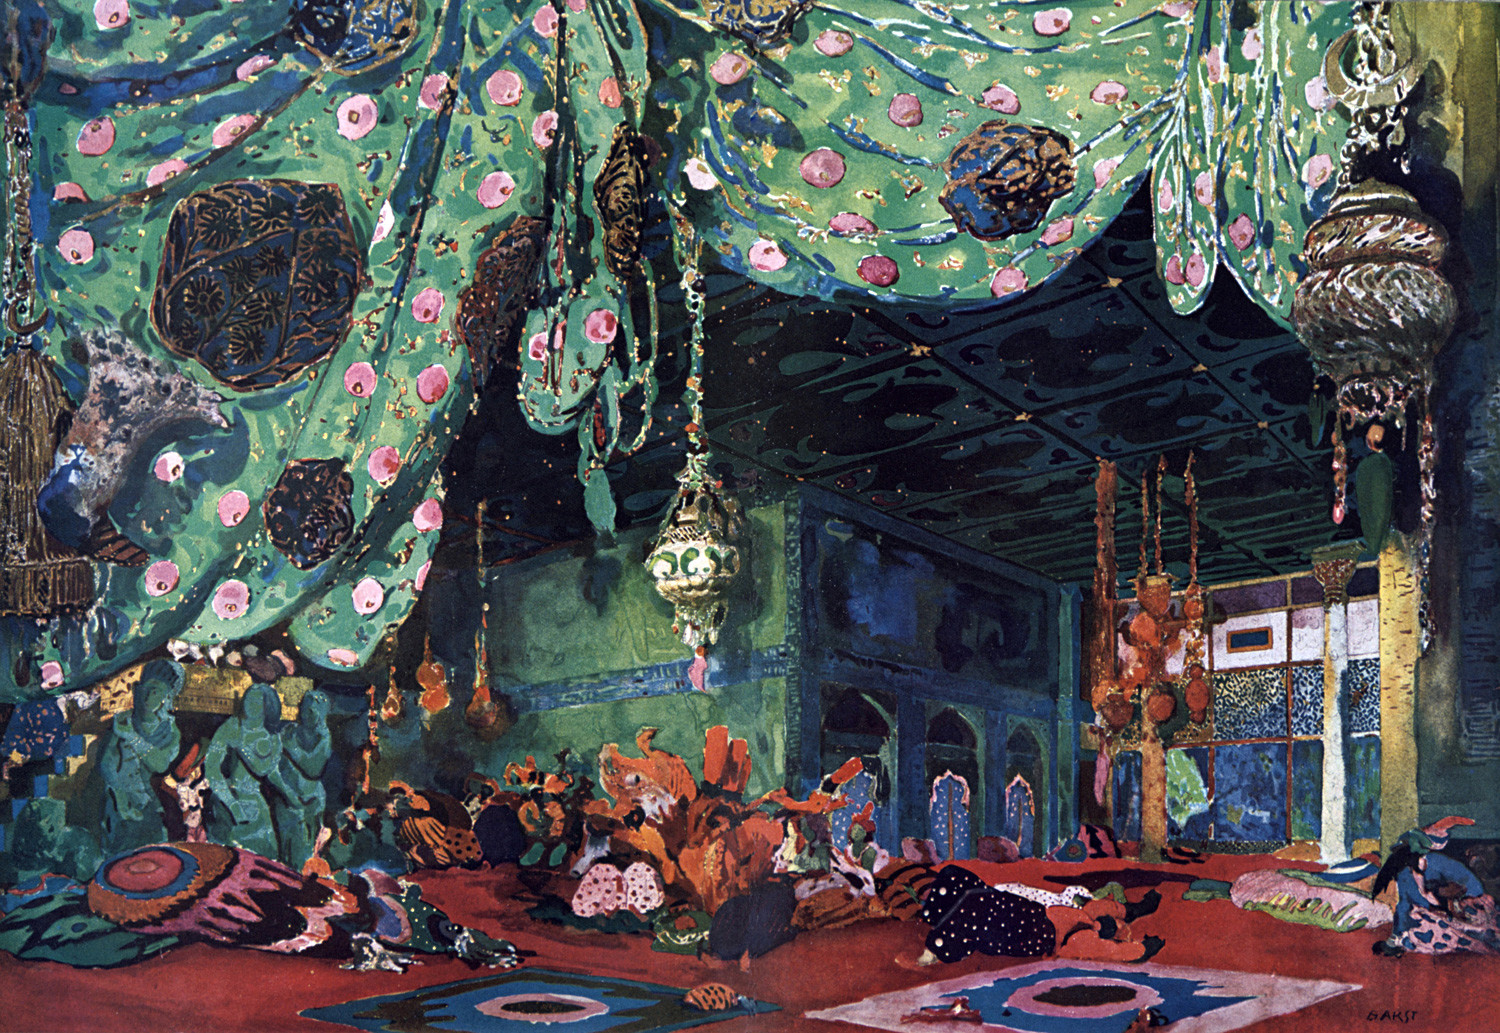 Scenery design by Leon Bakst (1866-1924) 'Scheherazade' produced in 1910 by Sergei Diaghilev's Ballets Russes. Music by Nikolai Rimsky-Korsakov, choreography by Michel Fokine.